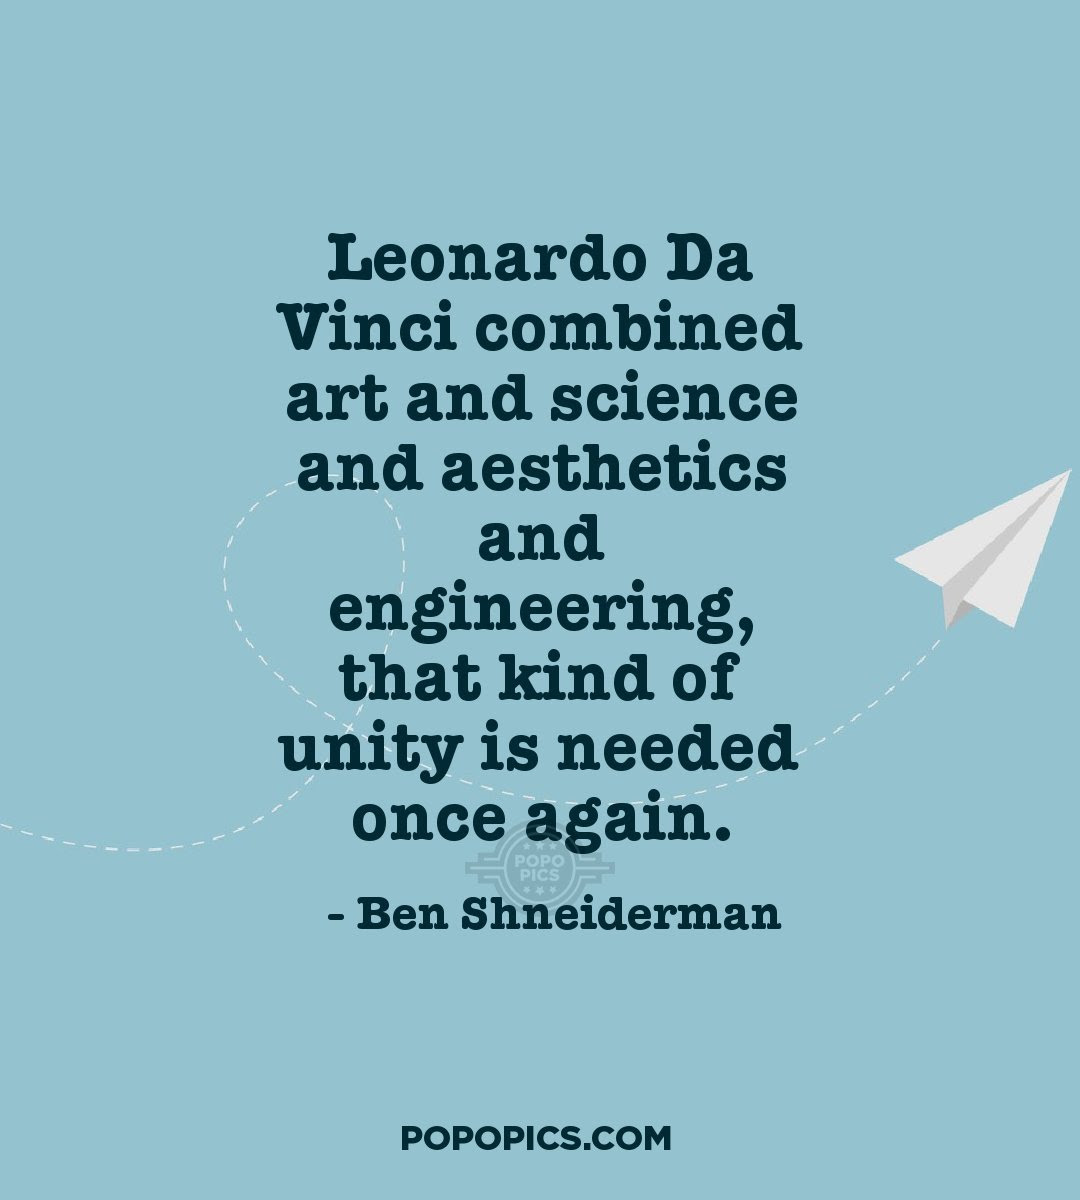 Leonardo Da Vinci Combined Art And Science And Quotes By Ben